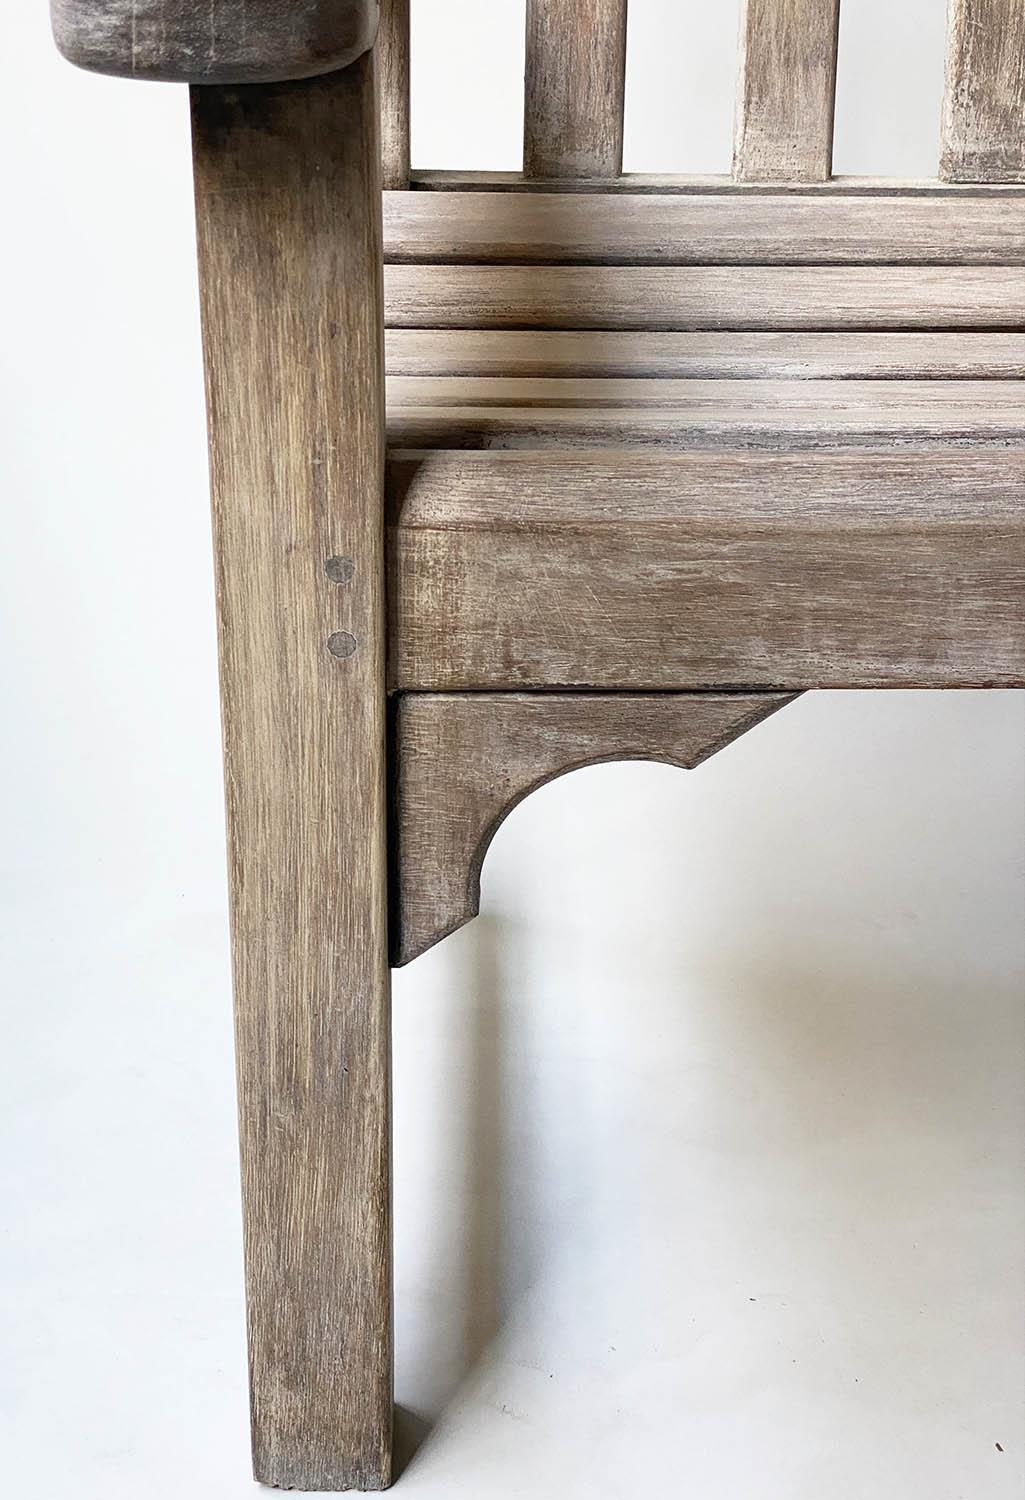 GARDEN BENCH, weathered teak of slatted construction with flat top arms, 160cm W. - Image 4 of 6